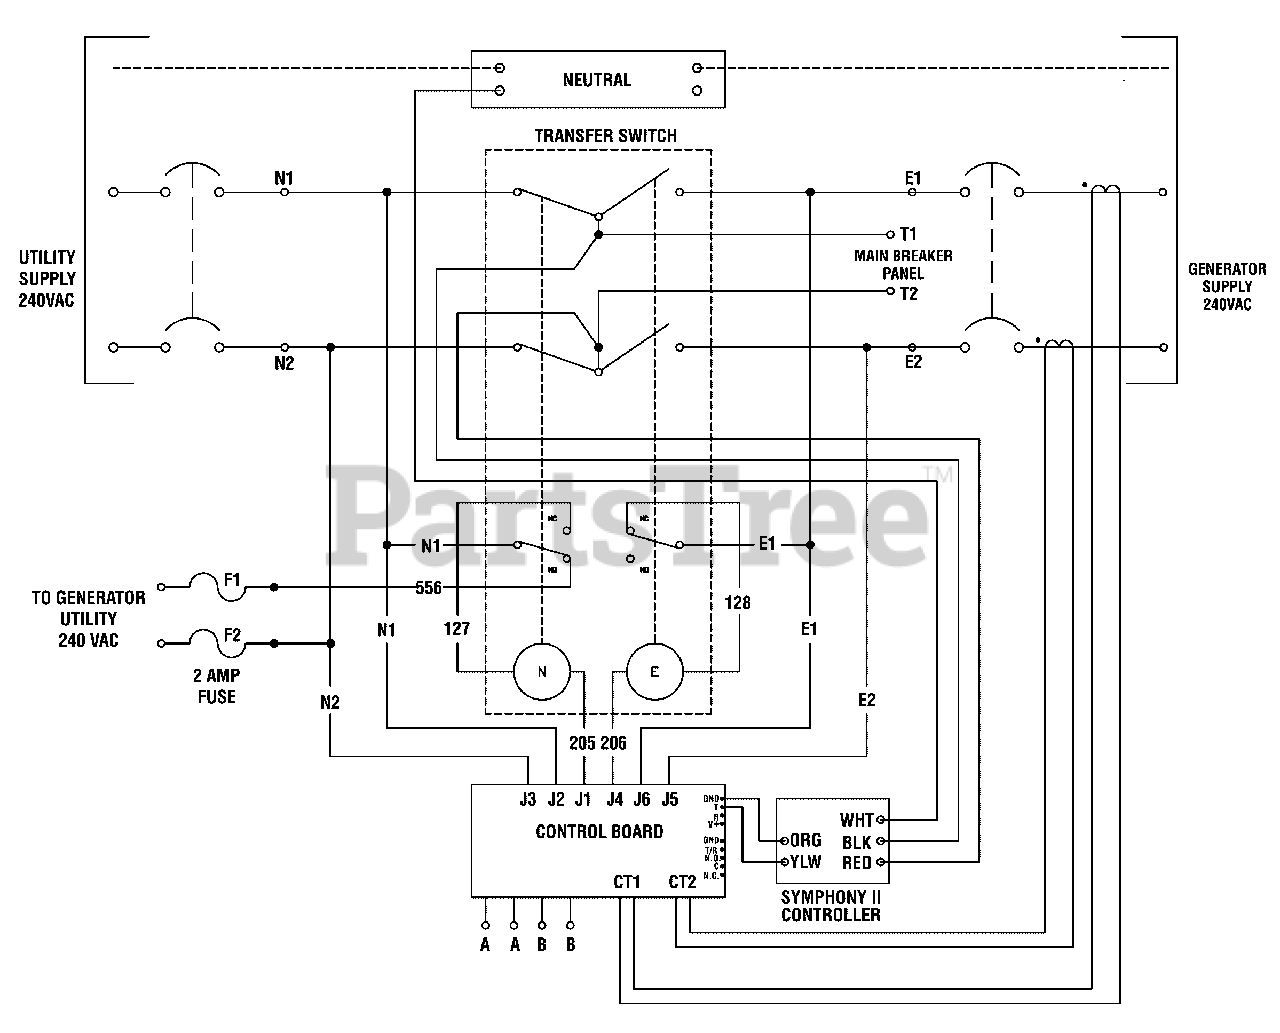 Standby Generator Wiring Diagram from www.partstree.com